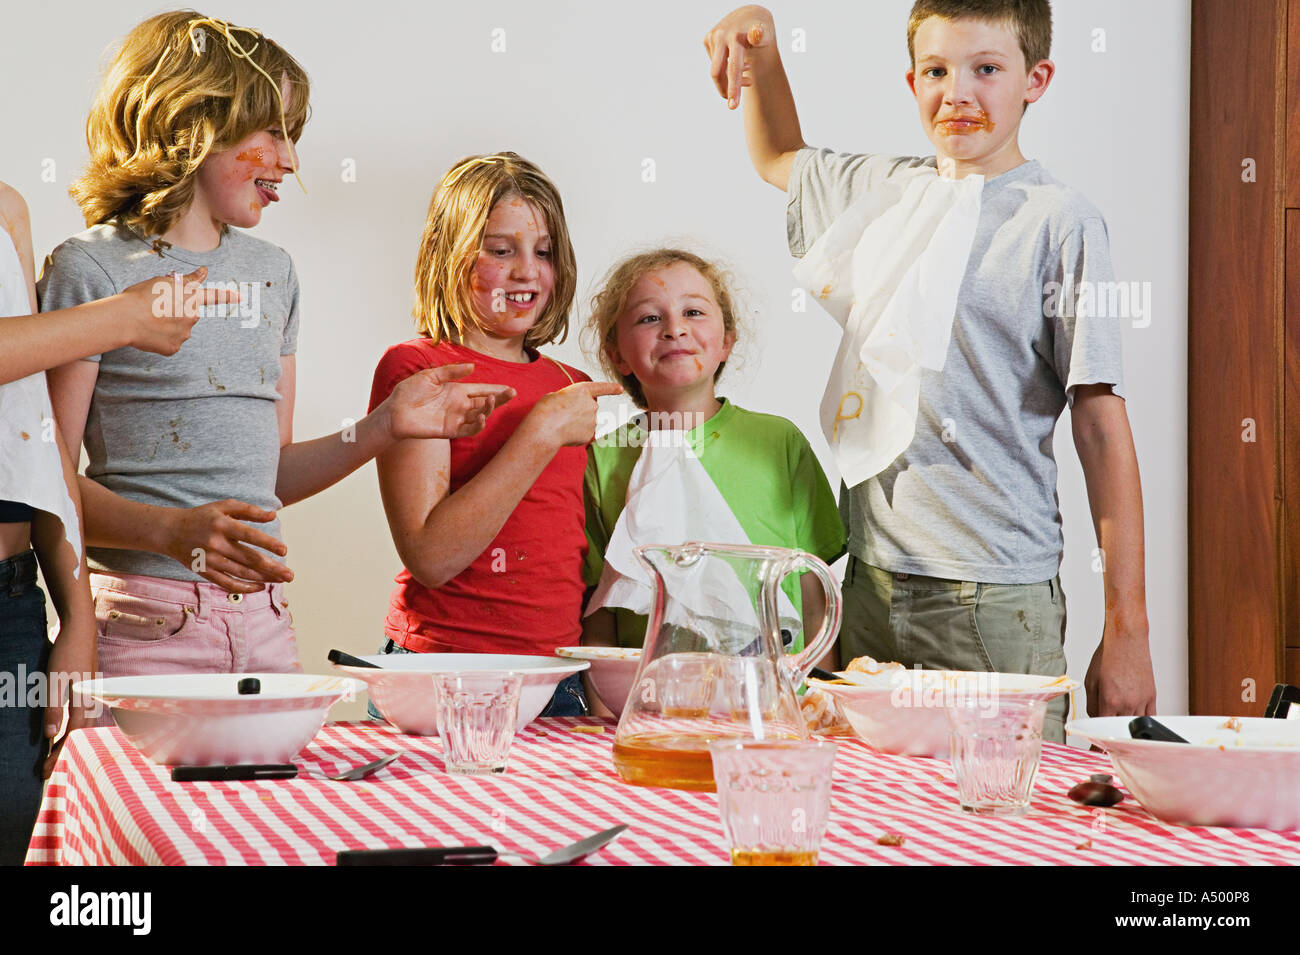 Messy children pointing at girl - Stock Image